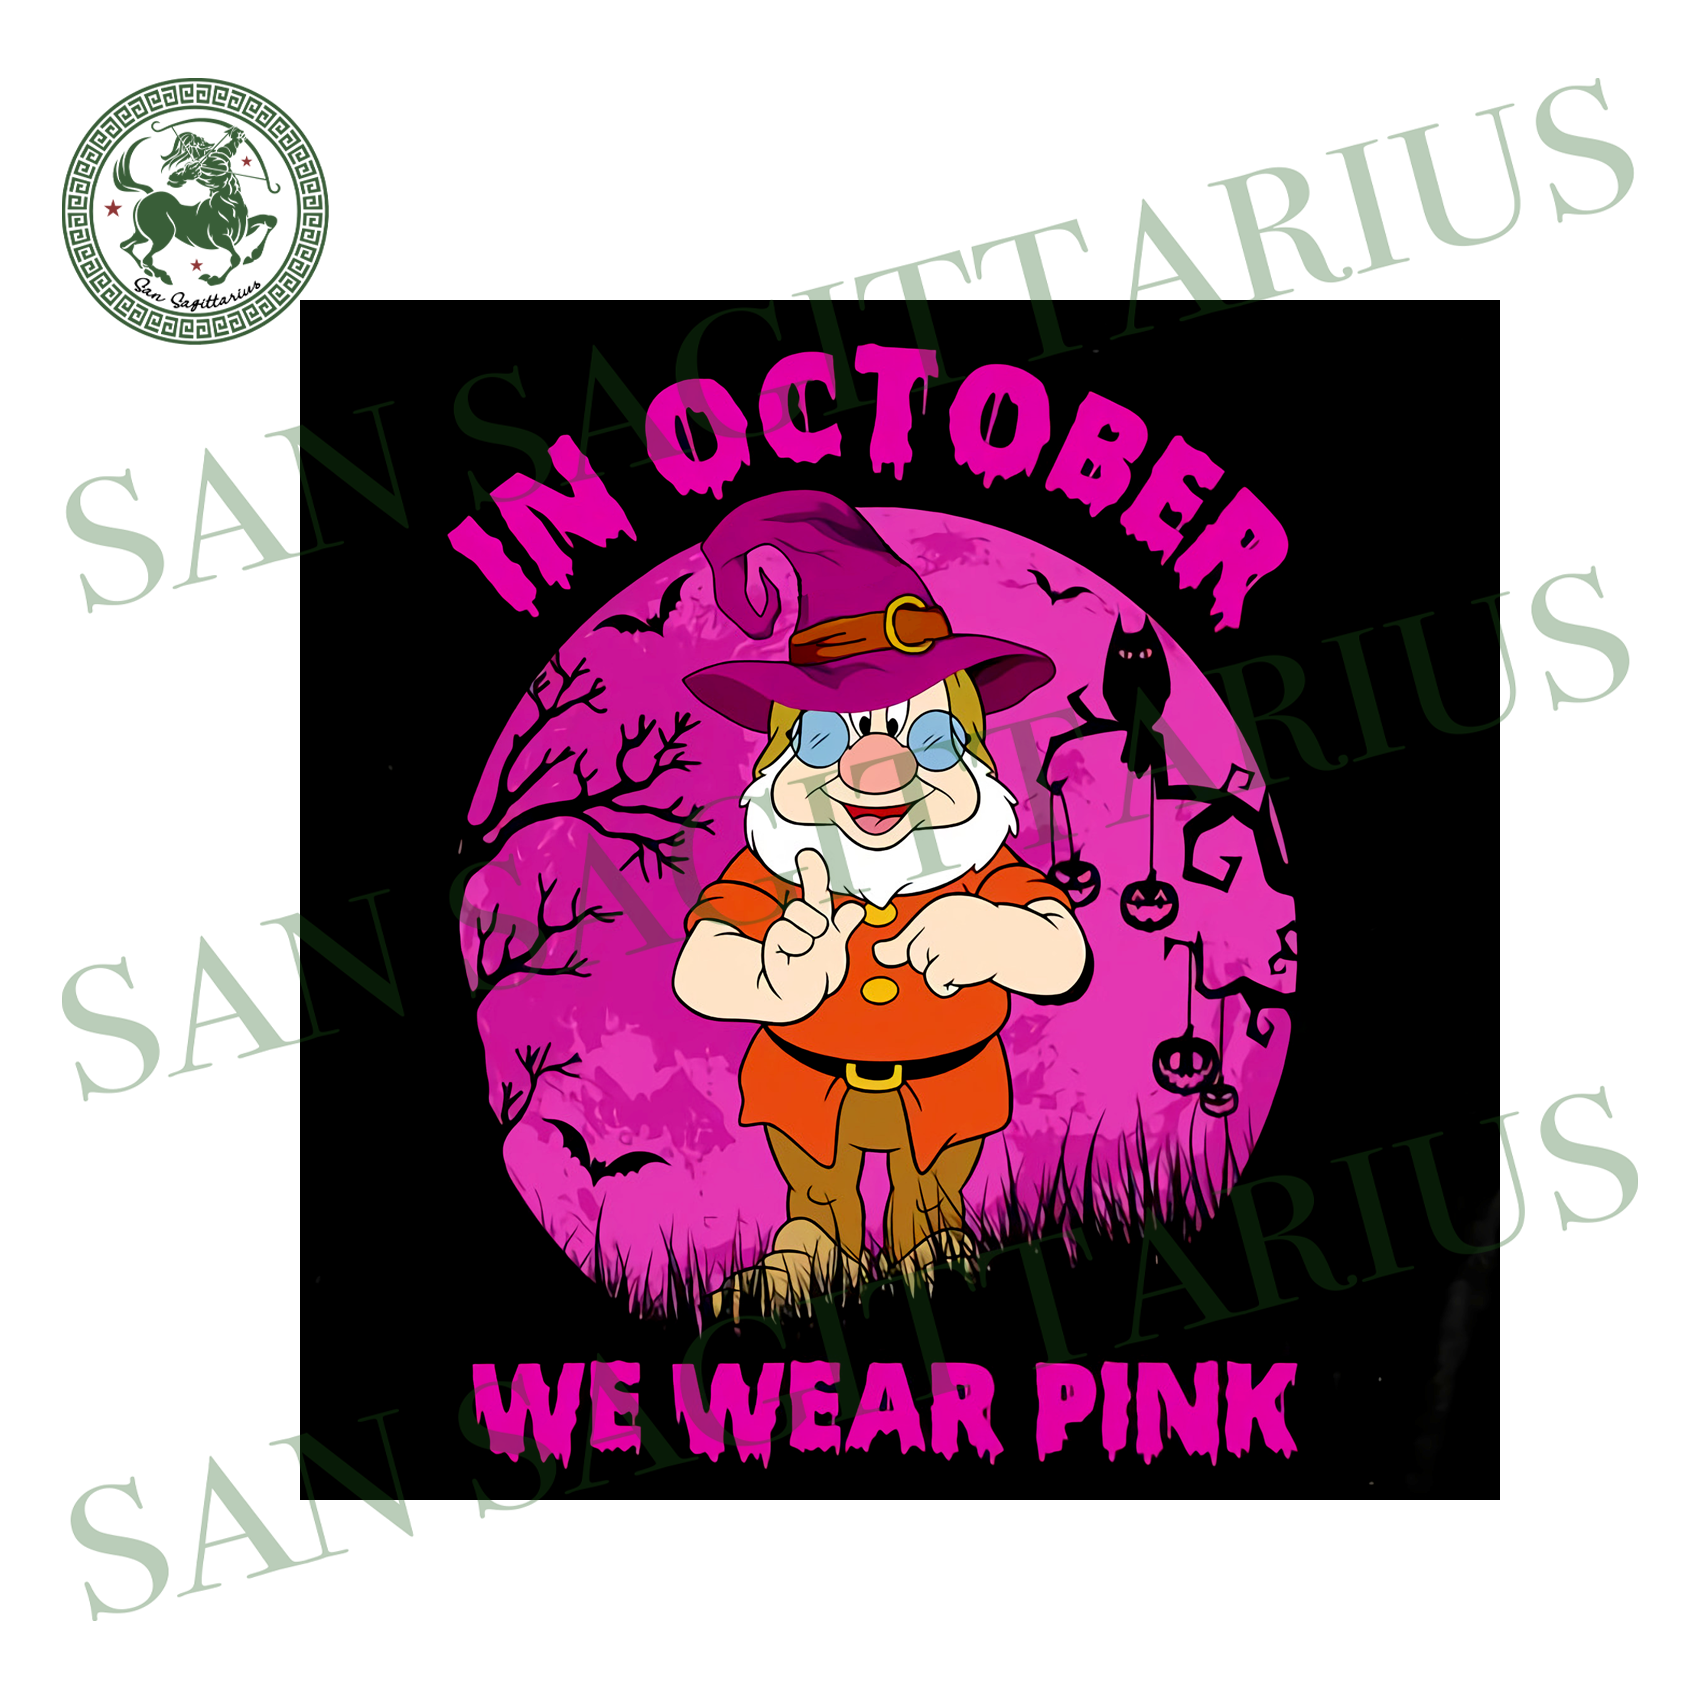 Doc Dwarf In October We Wear Pink, Halloween Svg, Happy Halloween, Halloween Gift, Halloween Shirt, Halloween Icon, Halloween Vector, Nightmare Svg, Doc Dwarf Svg, Cute Doc Dwarf